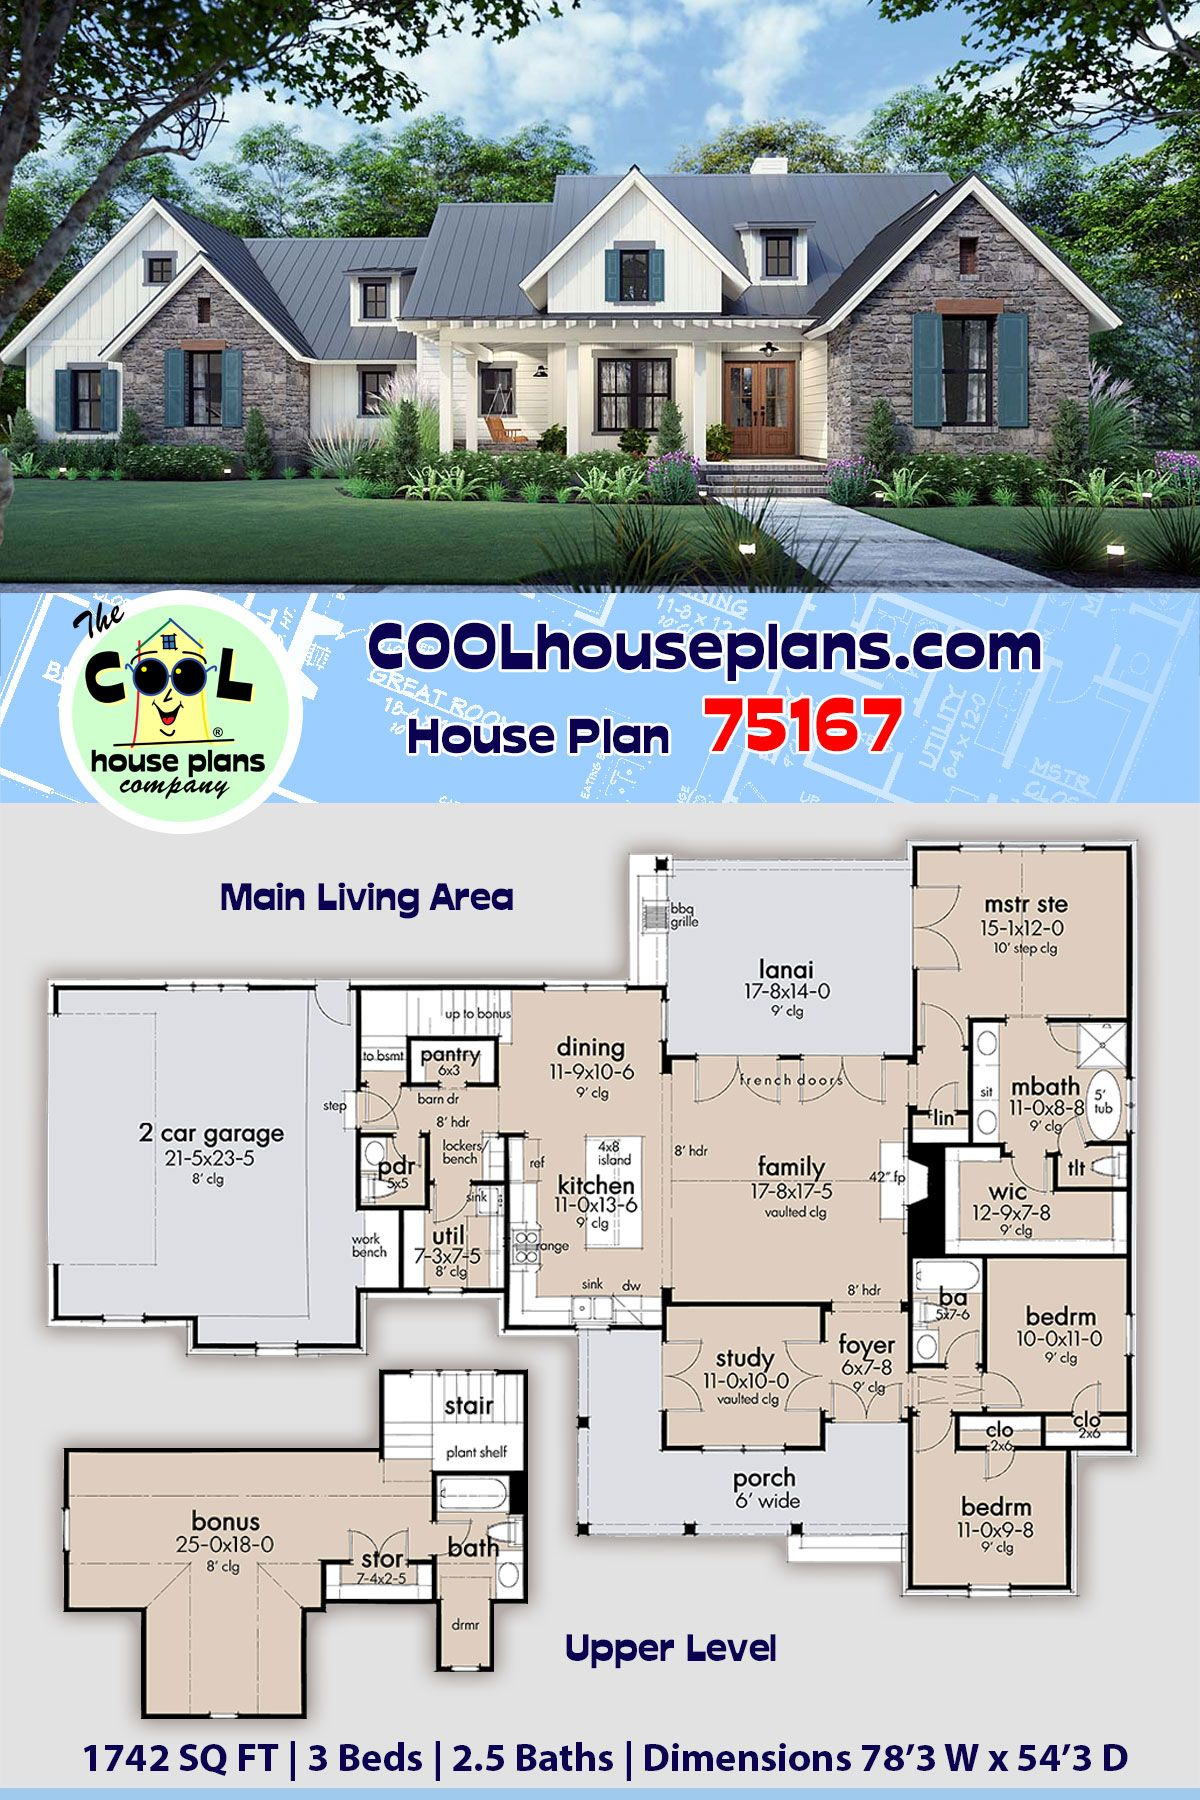 Southern Style House Plan 75167 With 3 Bed 3 Bath 2 Car Garage House Plans Farmhouse Farmhouse Plans House Plans